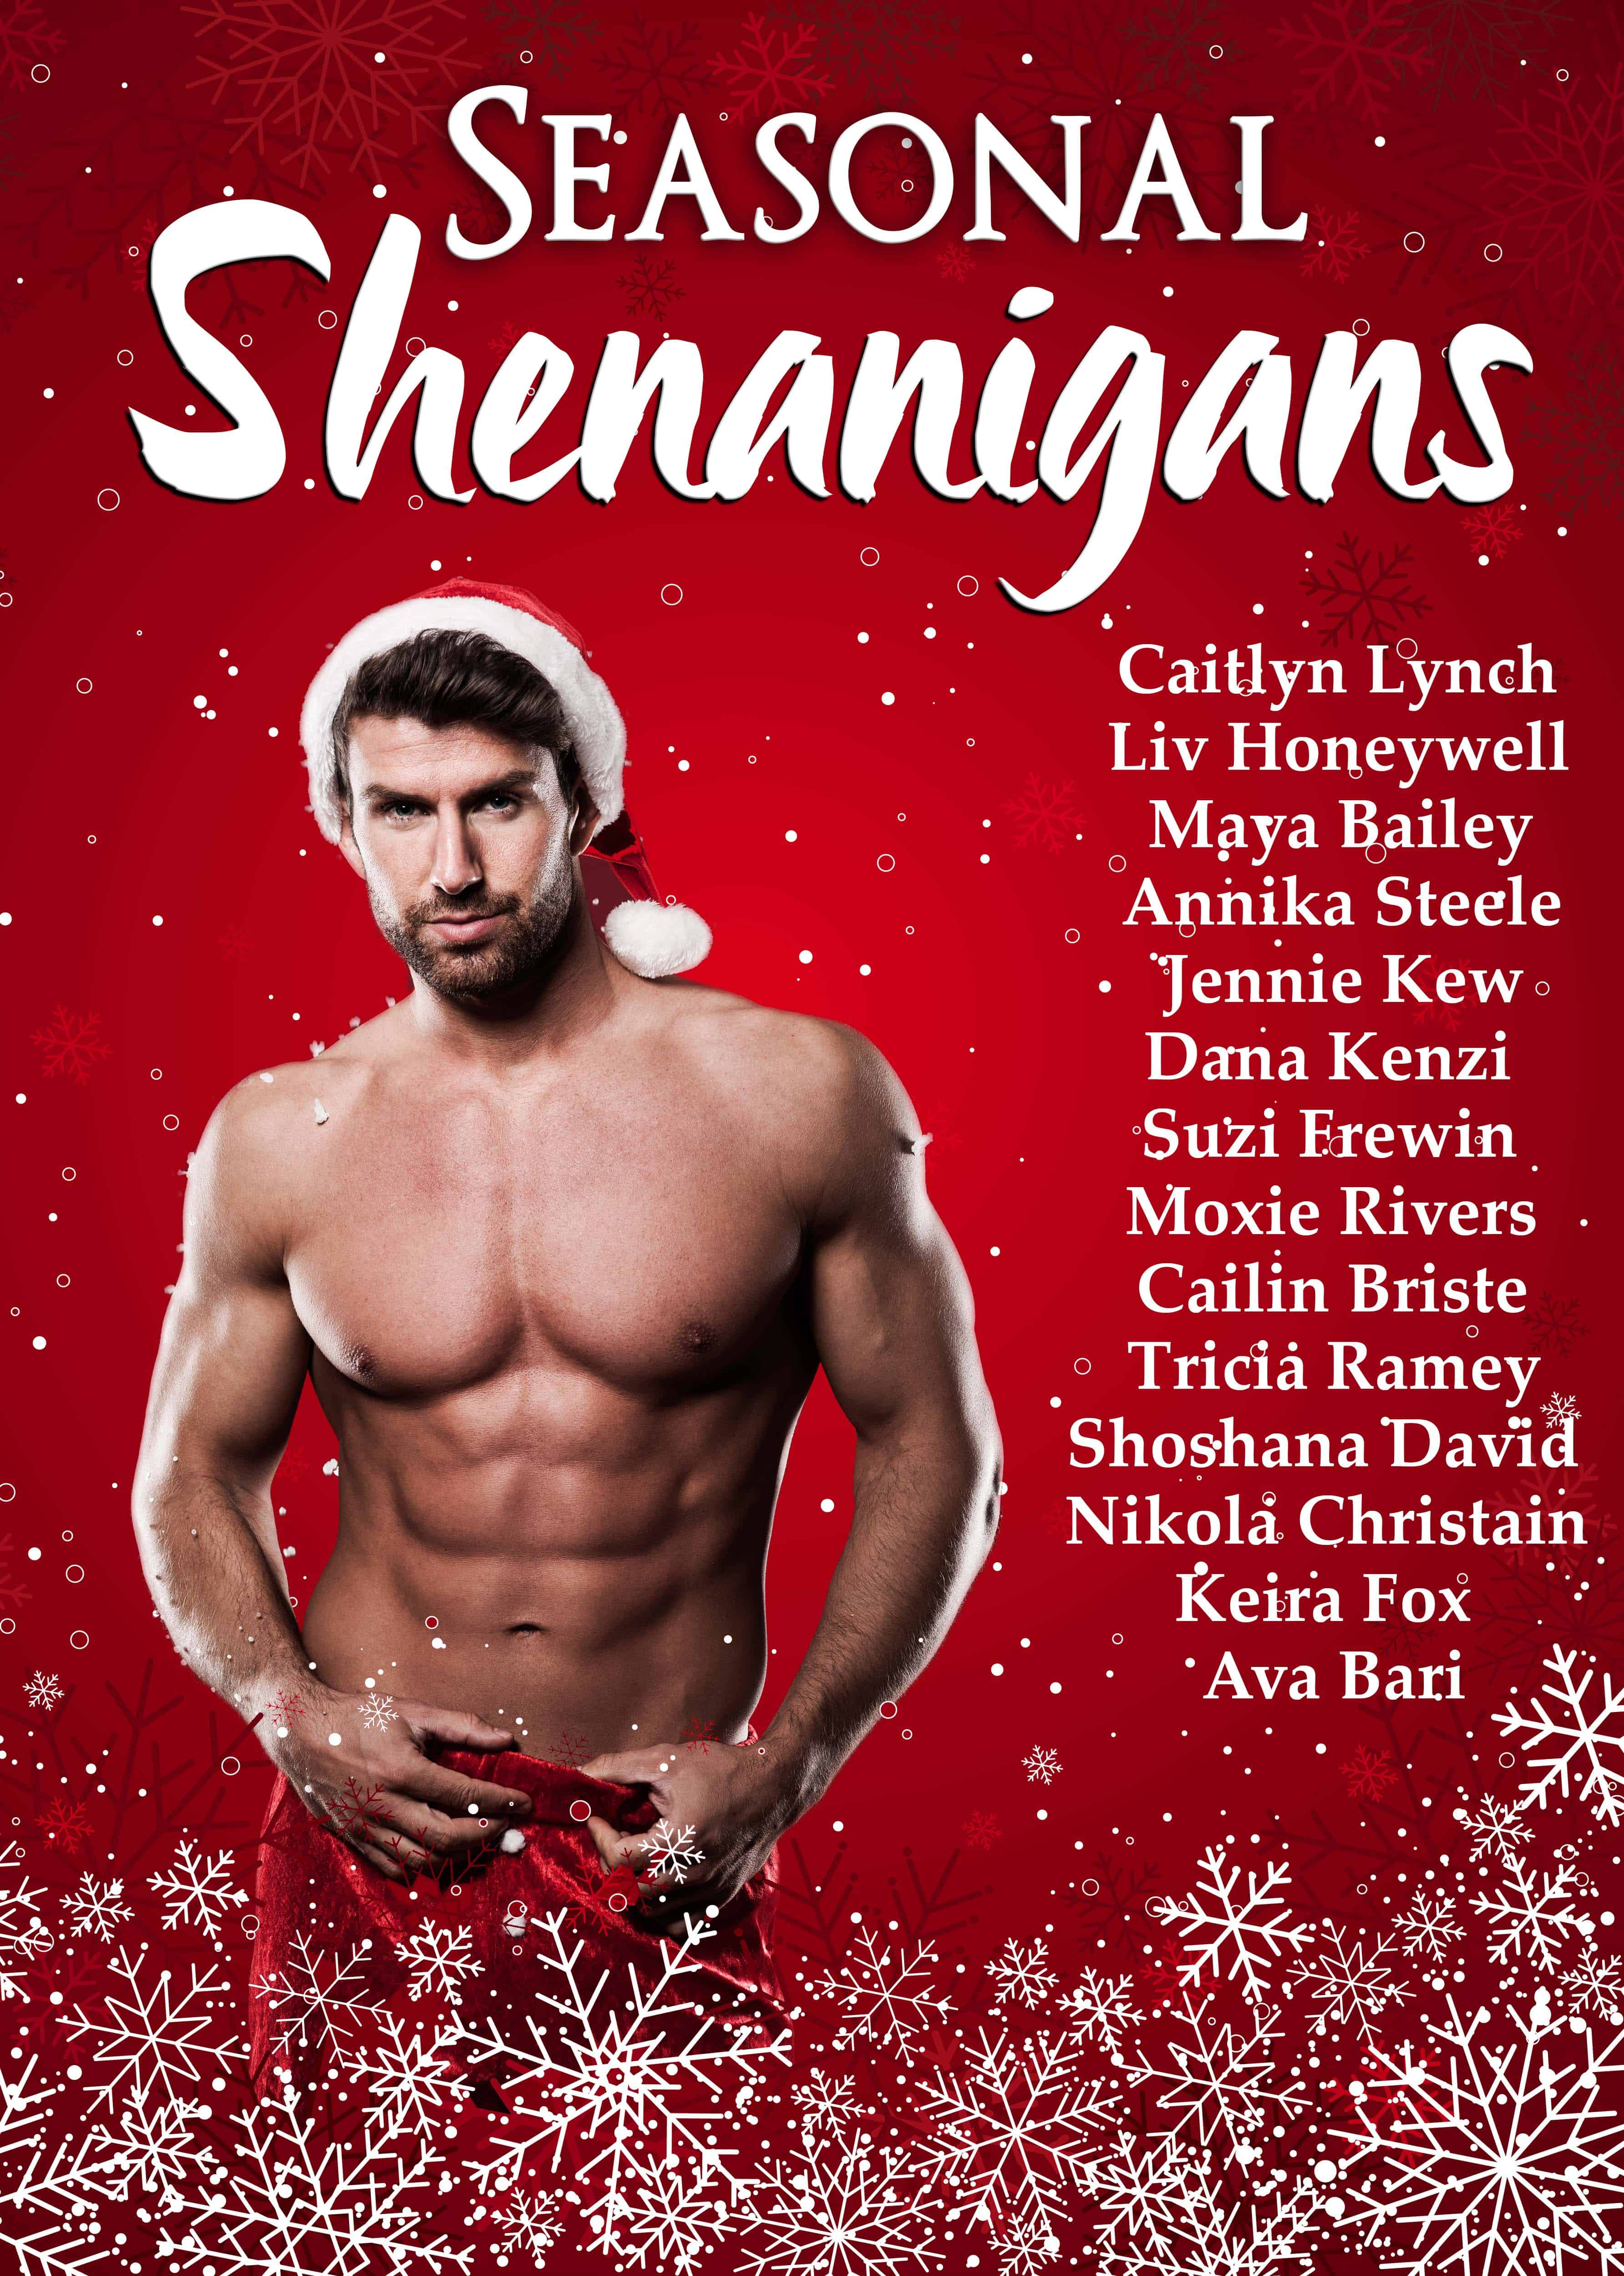 Seasonal Shenanigansreleases December 7. It's currently on pre-order for 99 cents and will remain at that price for the first week. Get you copy right away before the price increases to $4.99. My story in the anthology,A Grease Monkey Christmasis all about two strangers who meet at a spaceport and share Christmas. Cinderella meets her handsome prince but doesn't go to a ball or lose her shoe. Follow the link to read an excerpt.